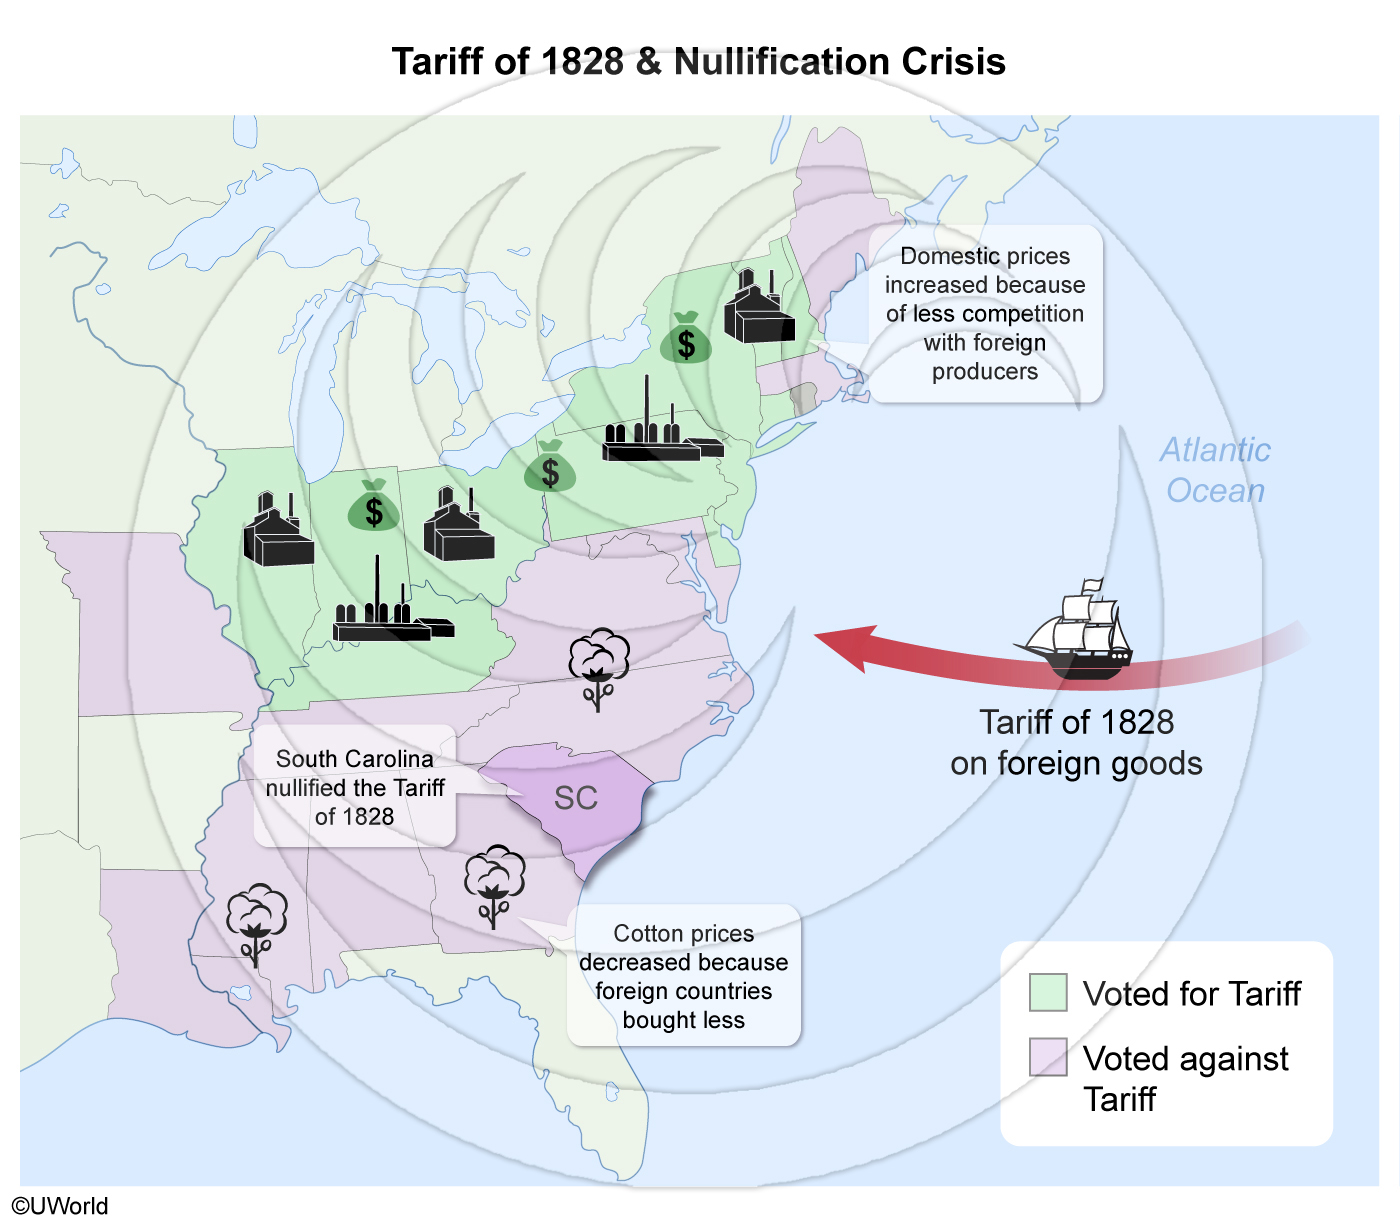 iBank-Tariff-1828-Nullification-Crisis.jpg